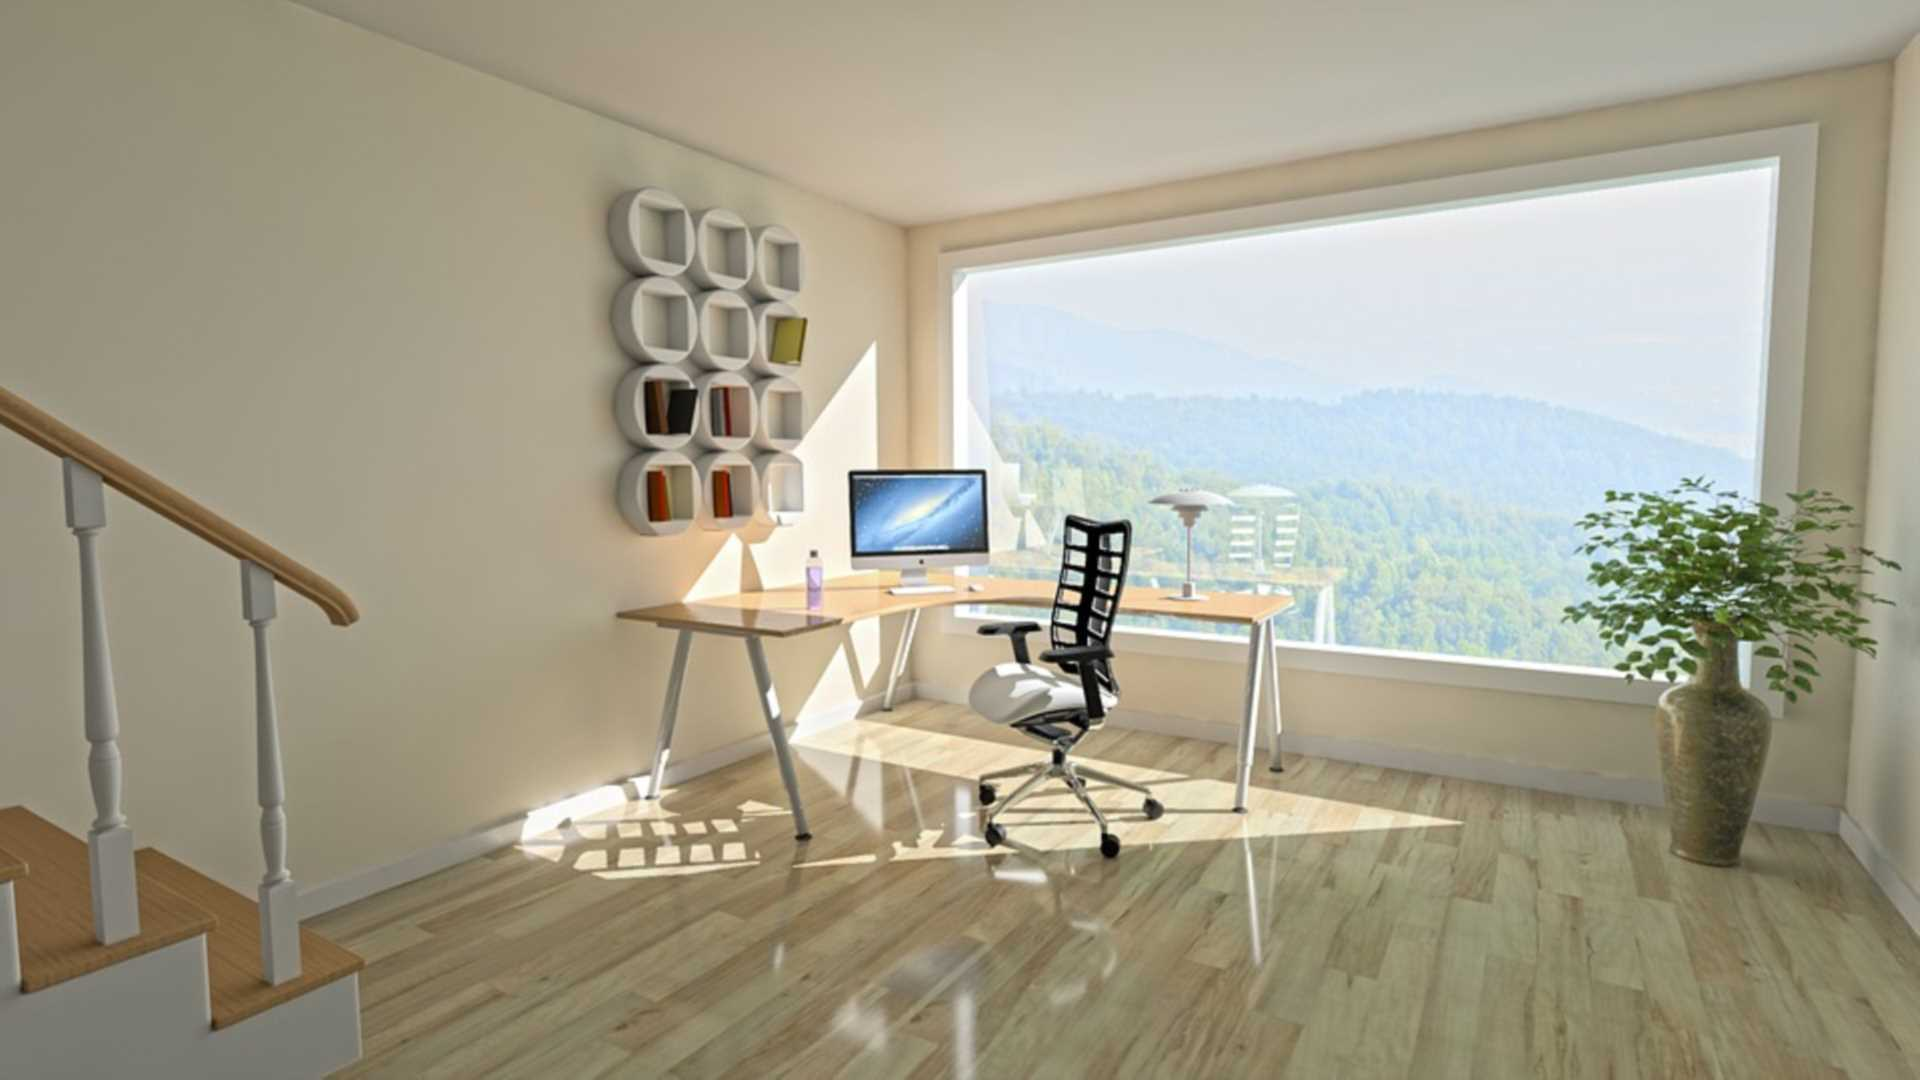 Properties For The Freelance Generation